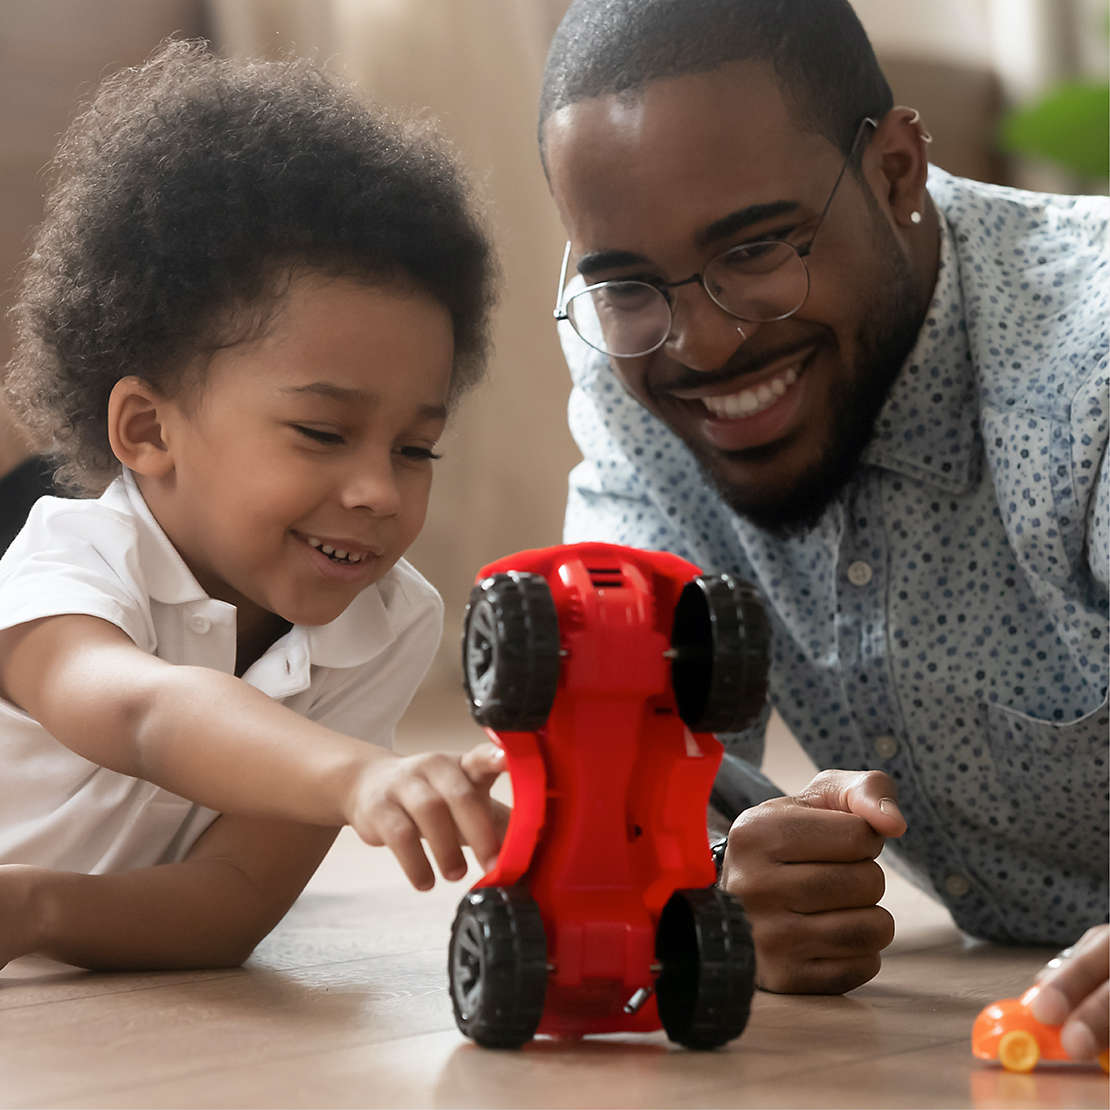 Father and son play with red race car toy